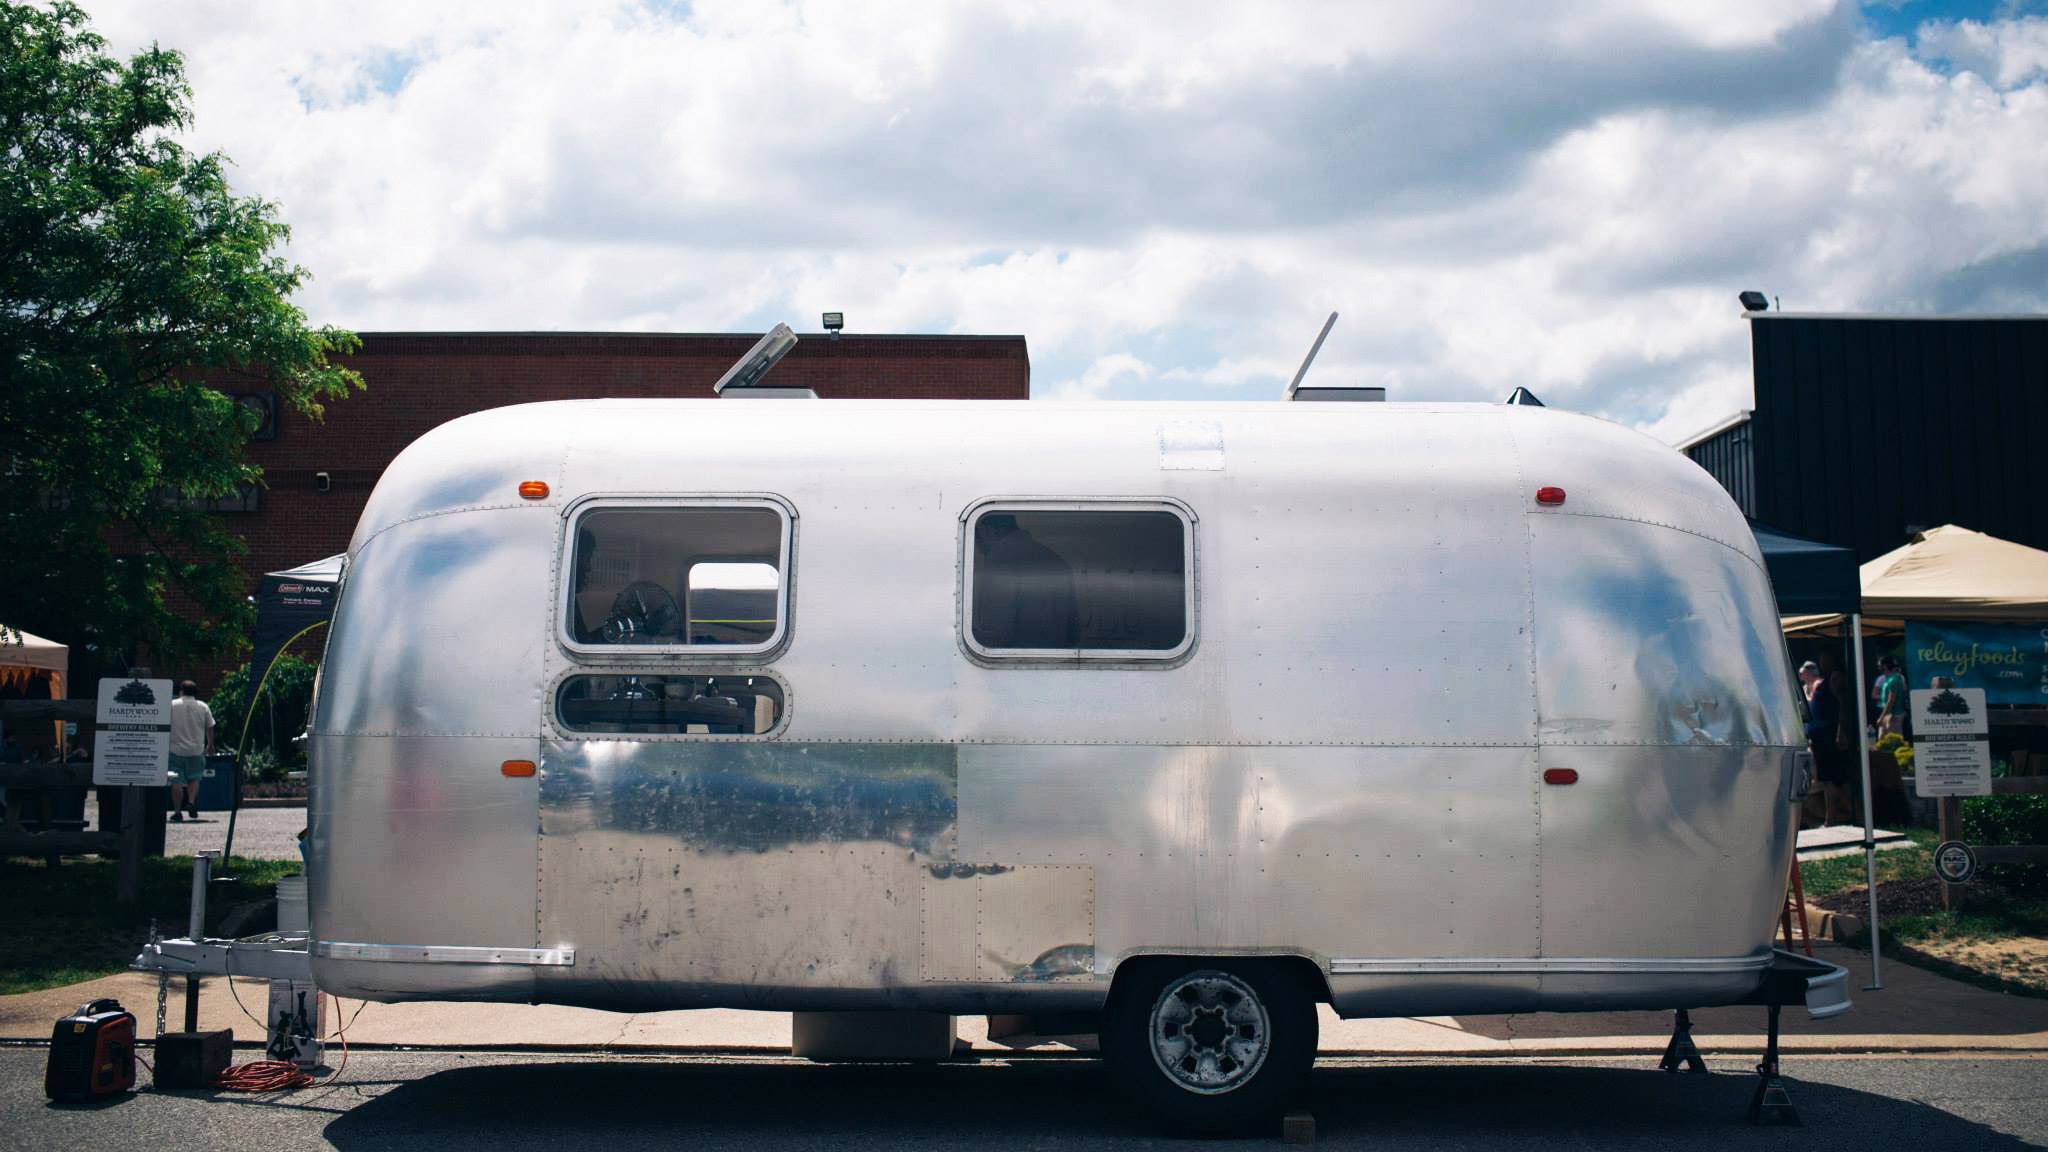 Retail startup Love This uses a refurbished Airstream camper as its  storefront. Photos by Casey